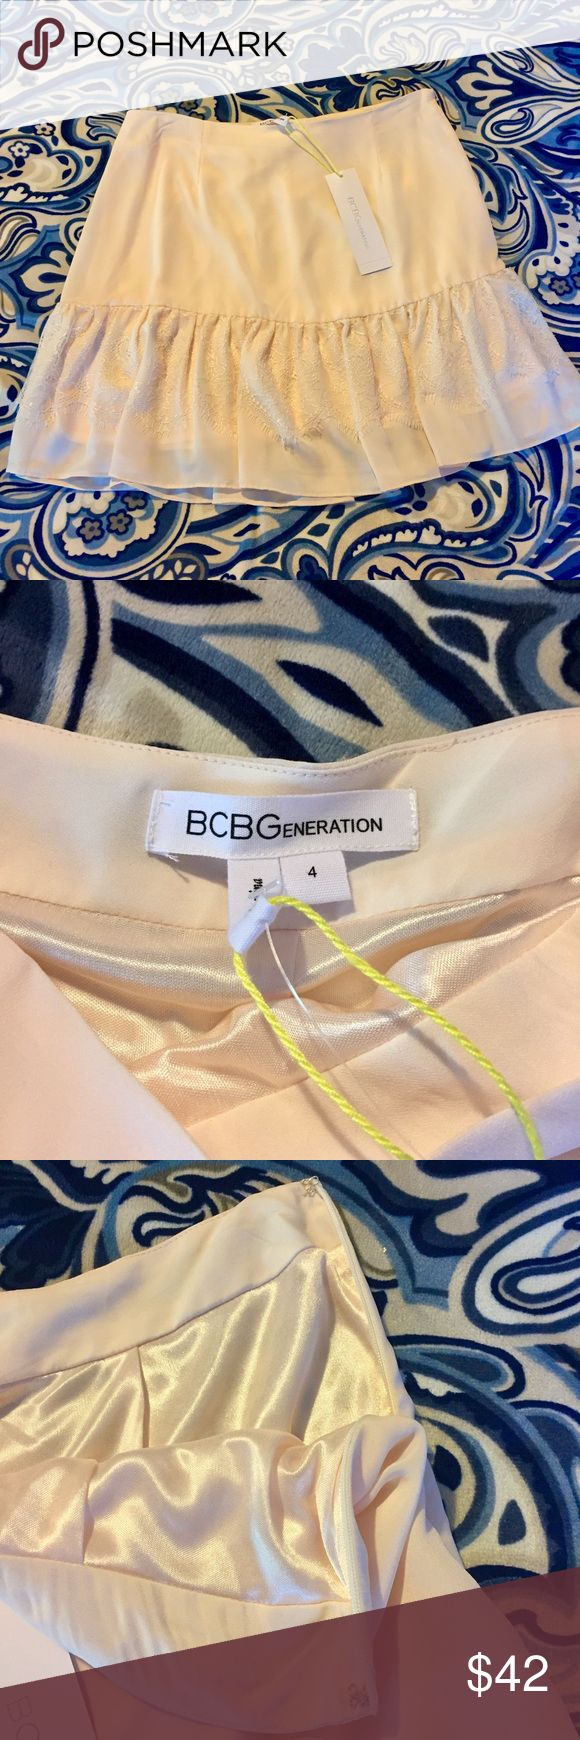 "BCBG Generation tiered mini skirt An absolutely delicate and dainty tiered mini skirt. Y BCBG Generation.  Beautifully made with delicate soft polyester, darted waistband with zip and clasp side enclosure.  Bottom ruffle features a lovely intricate lace.  100% lined.  Color : Soft Pink.  size: 4.  Length is 16"". Waist measures 29"" and sits just above hips. BCBGeneration Skirts Mini"